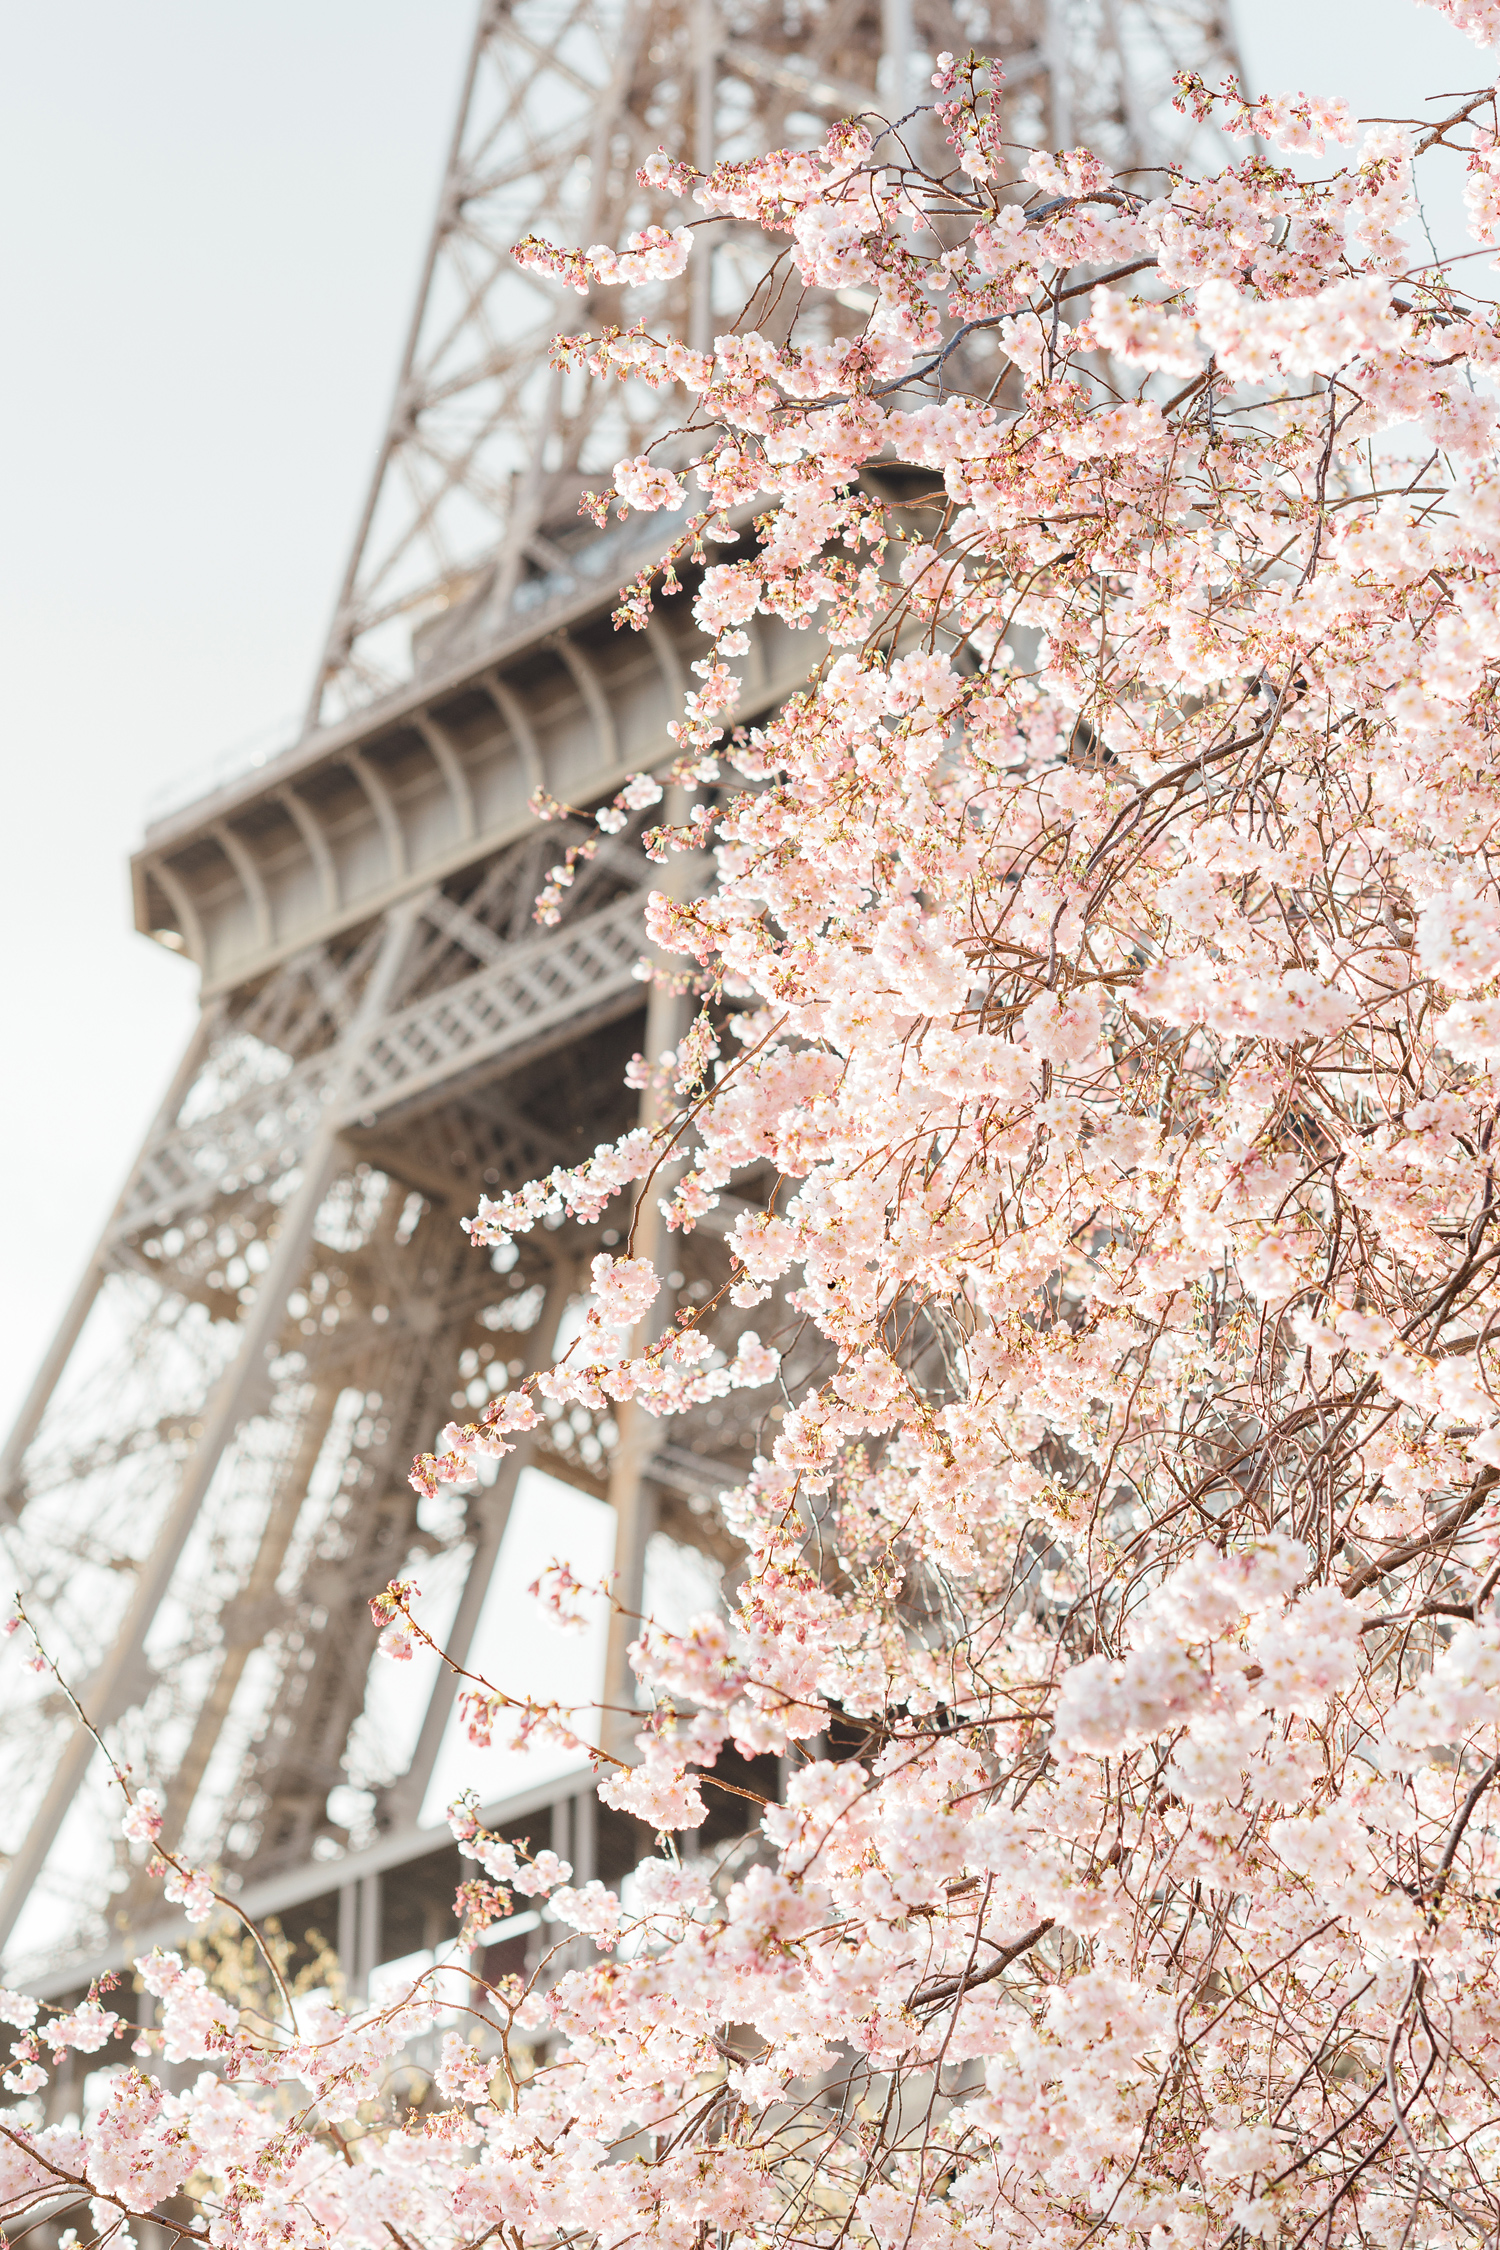 002-katie-mitchell-paris-photographer-springtime-cherry-blossom-magnolia-season-in-paris.jpg